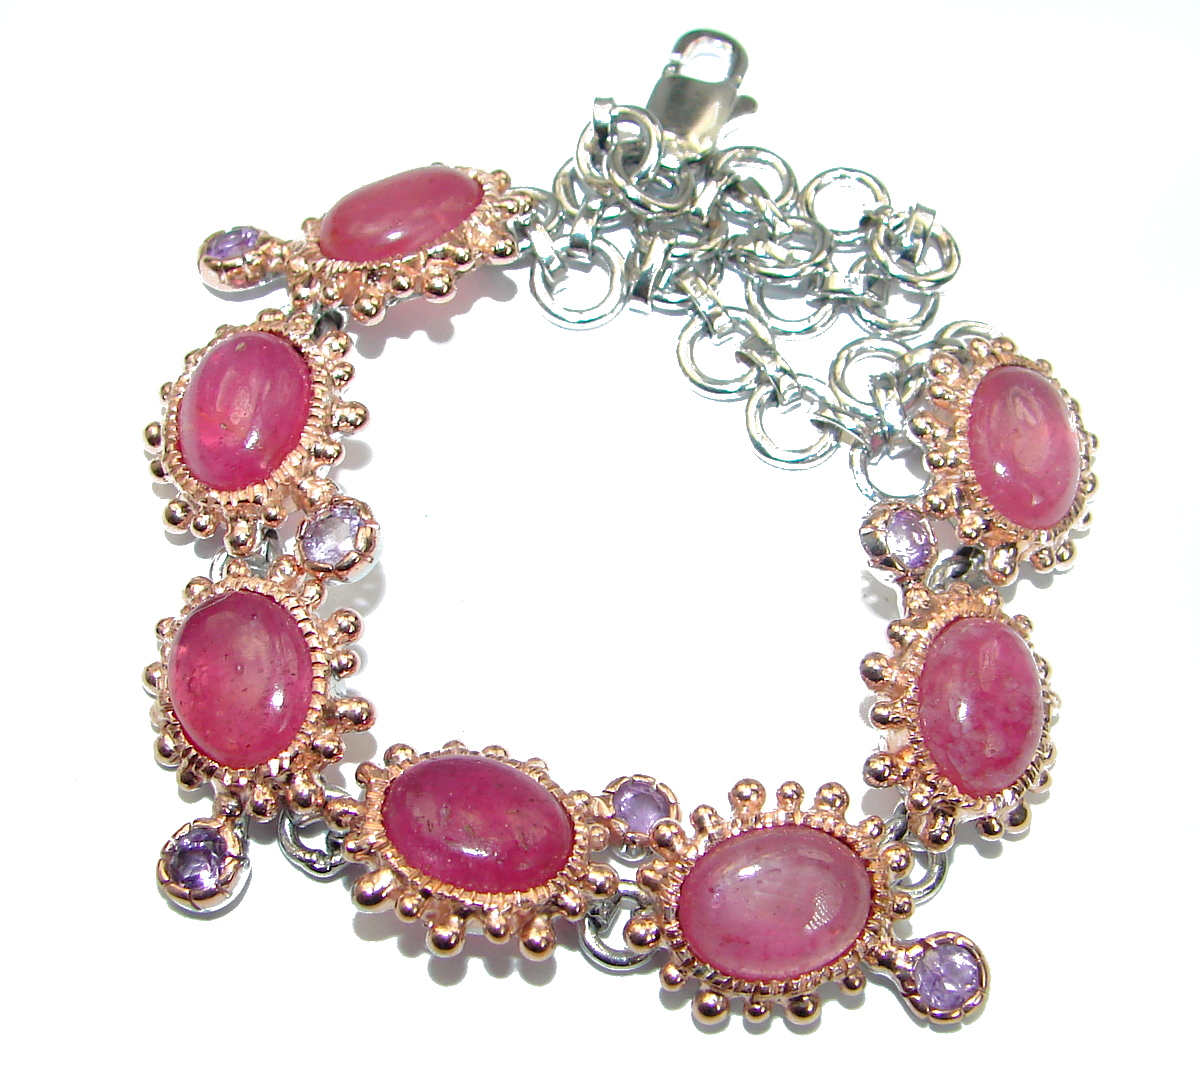 Flawless Passion Red Ruby 14K Gold over .925 Sterling Silver handcrafted Bracelet